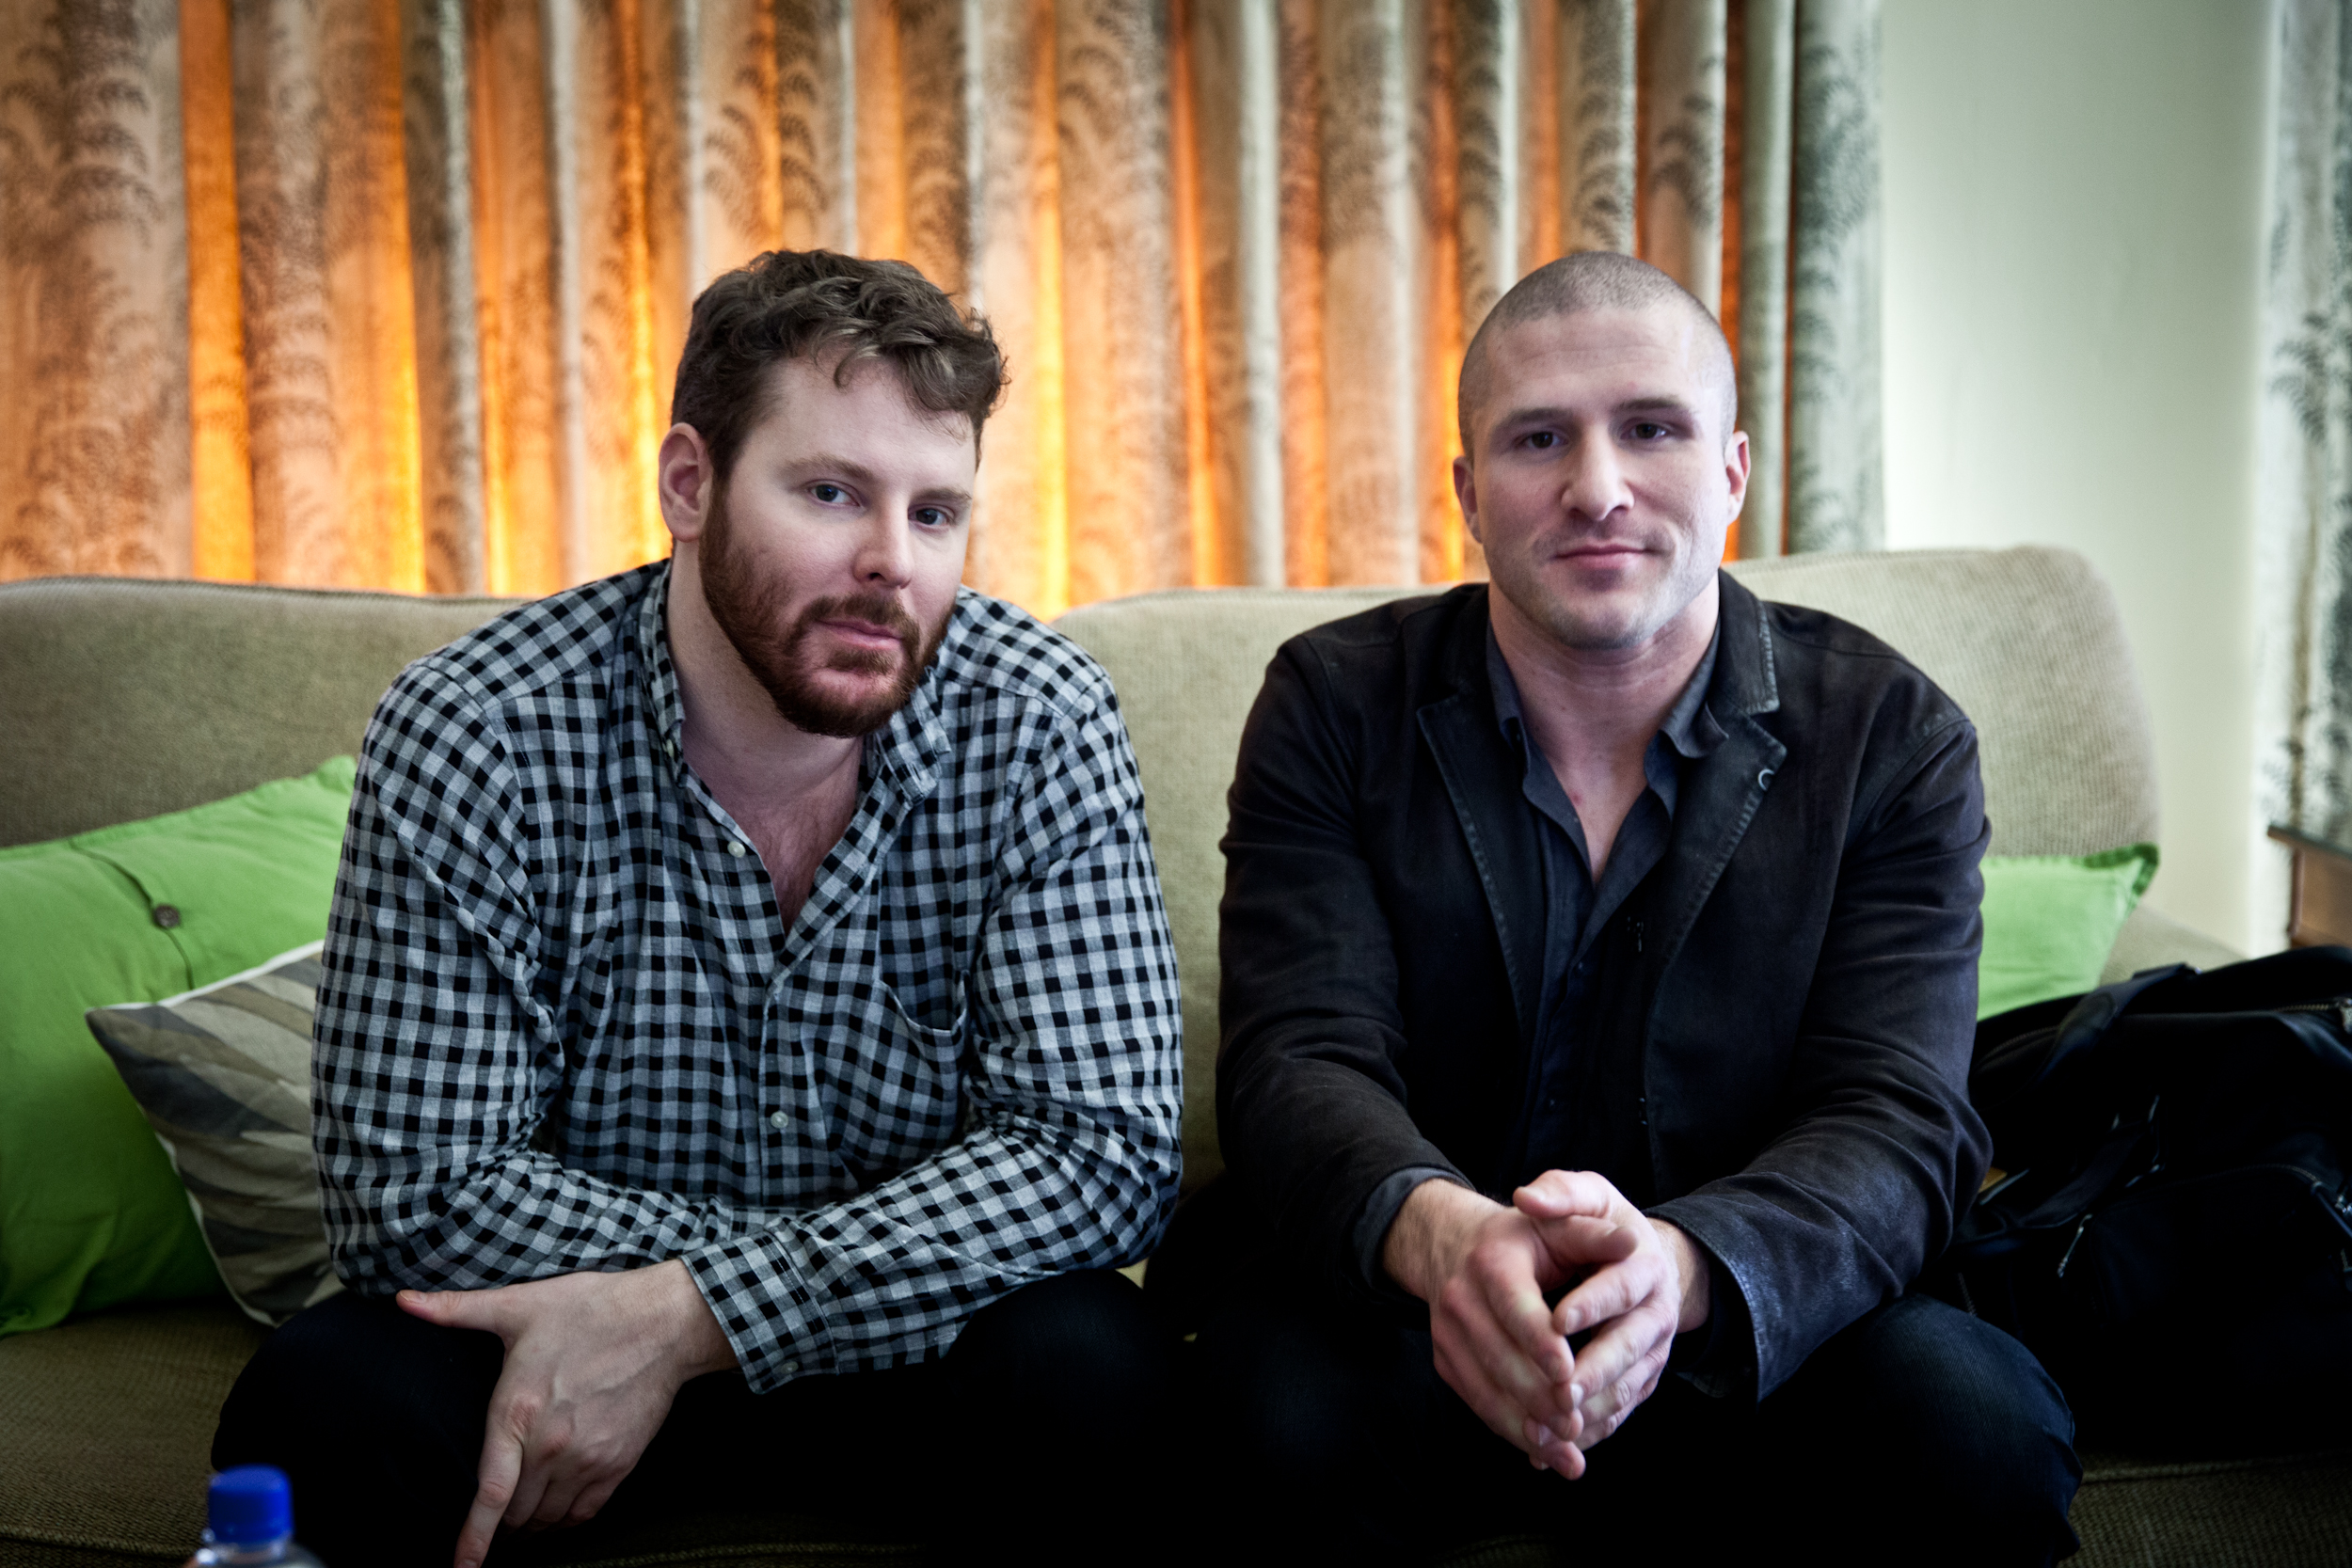 Napster co-founders Sean Parker (left) and Shawn Fanning